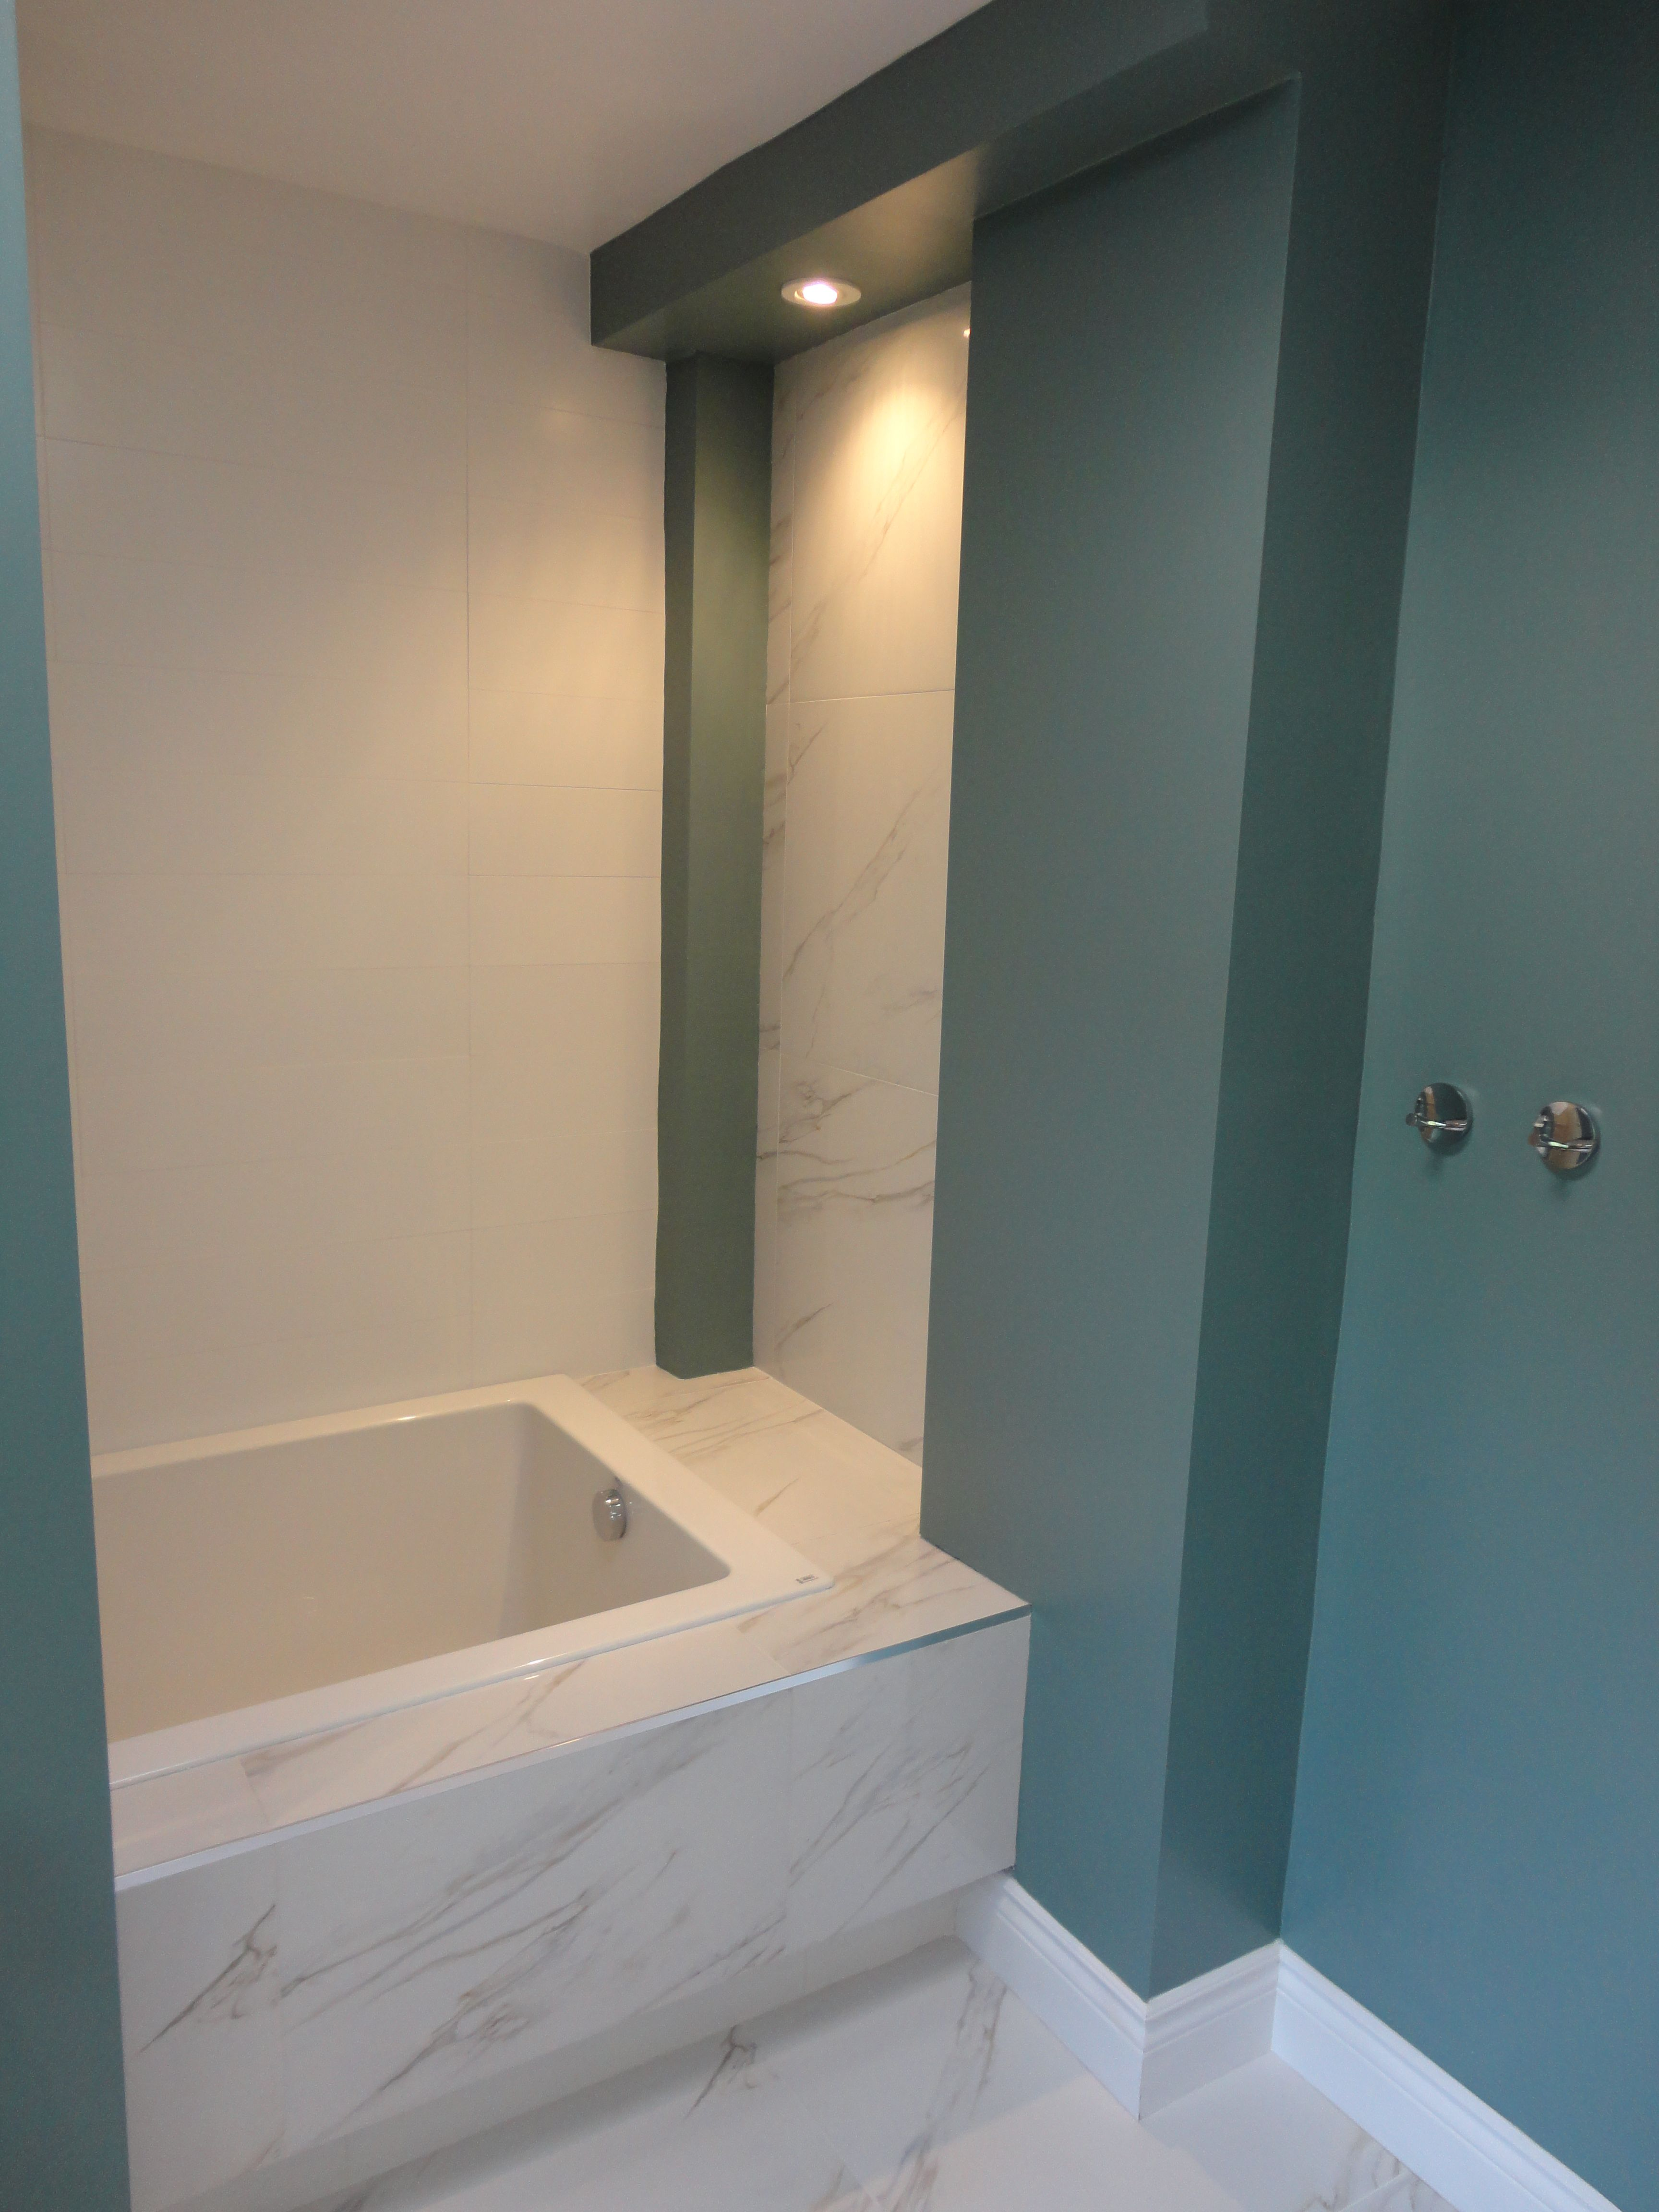 Captivating Townhouse Bathroom Expansion From 4x8 To 8x12